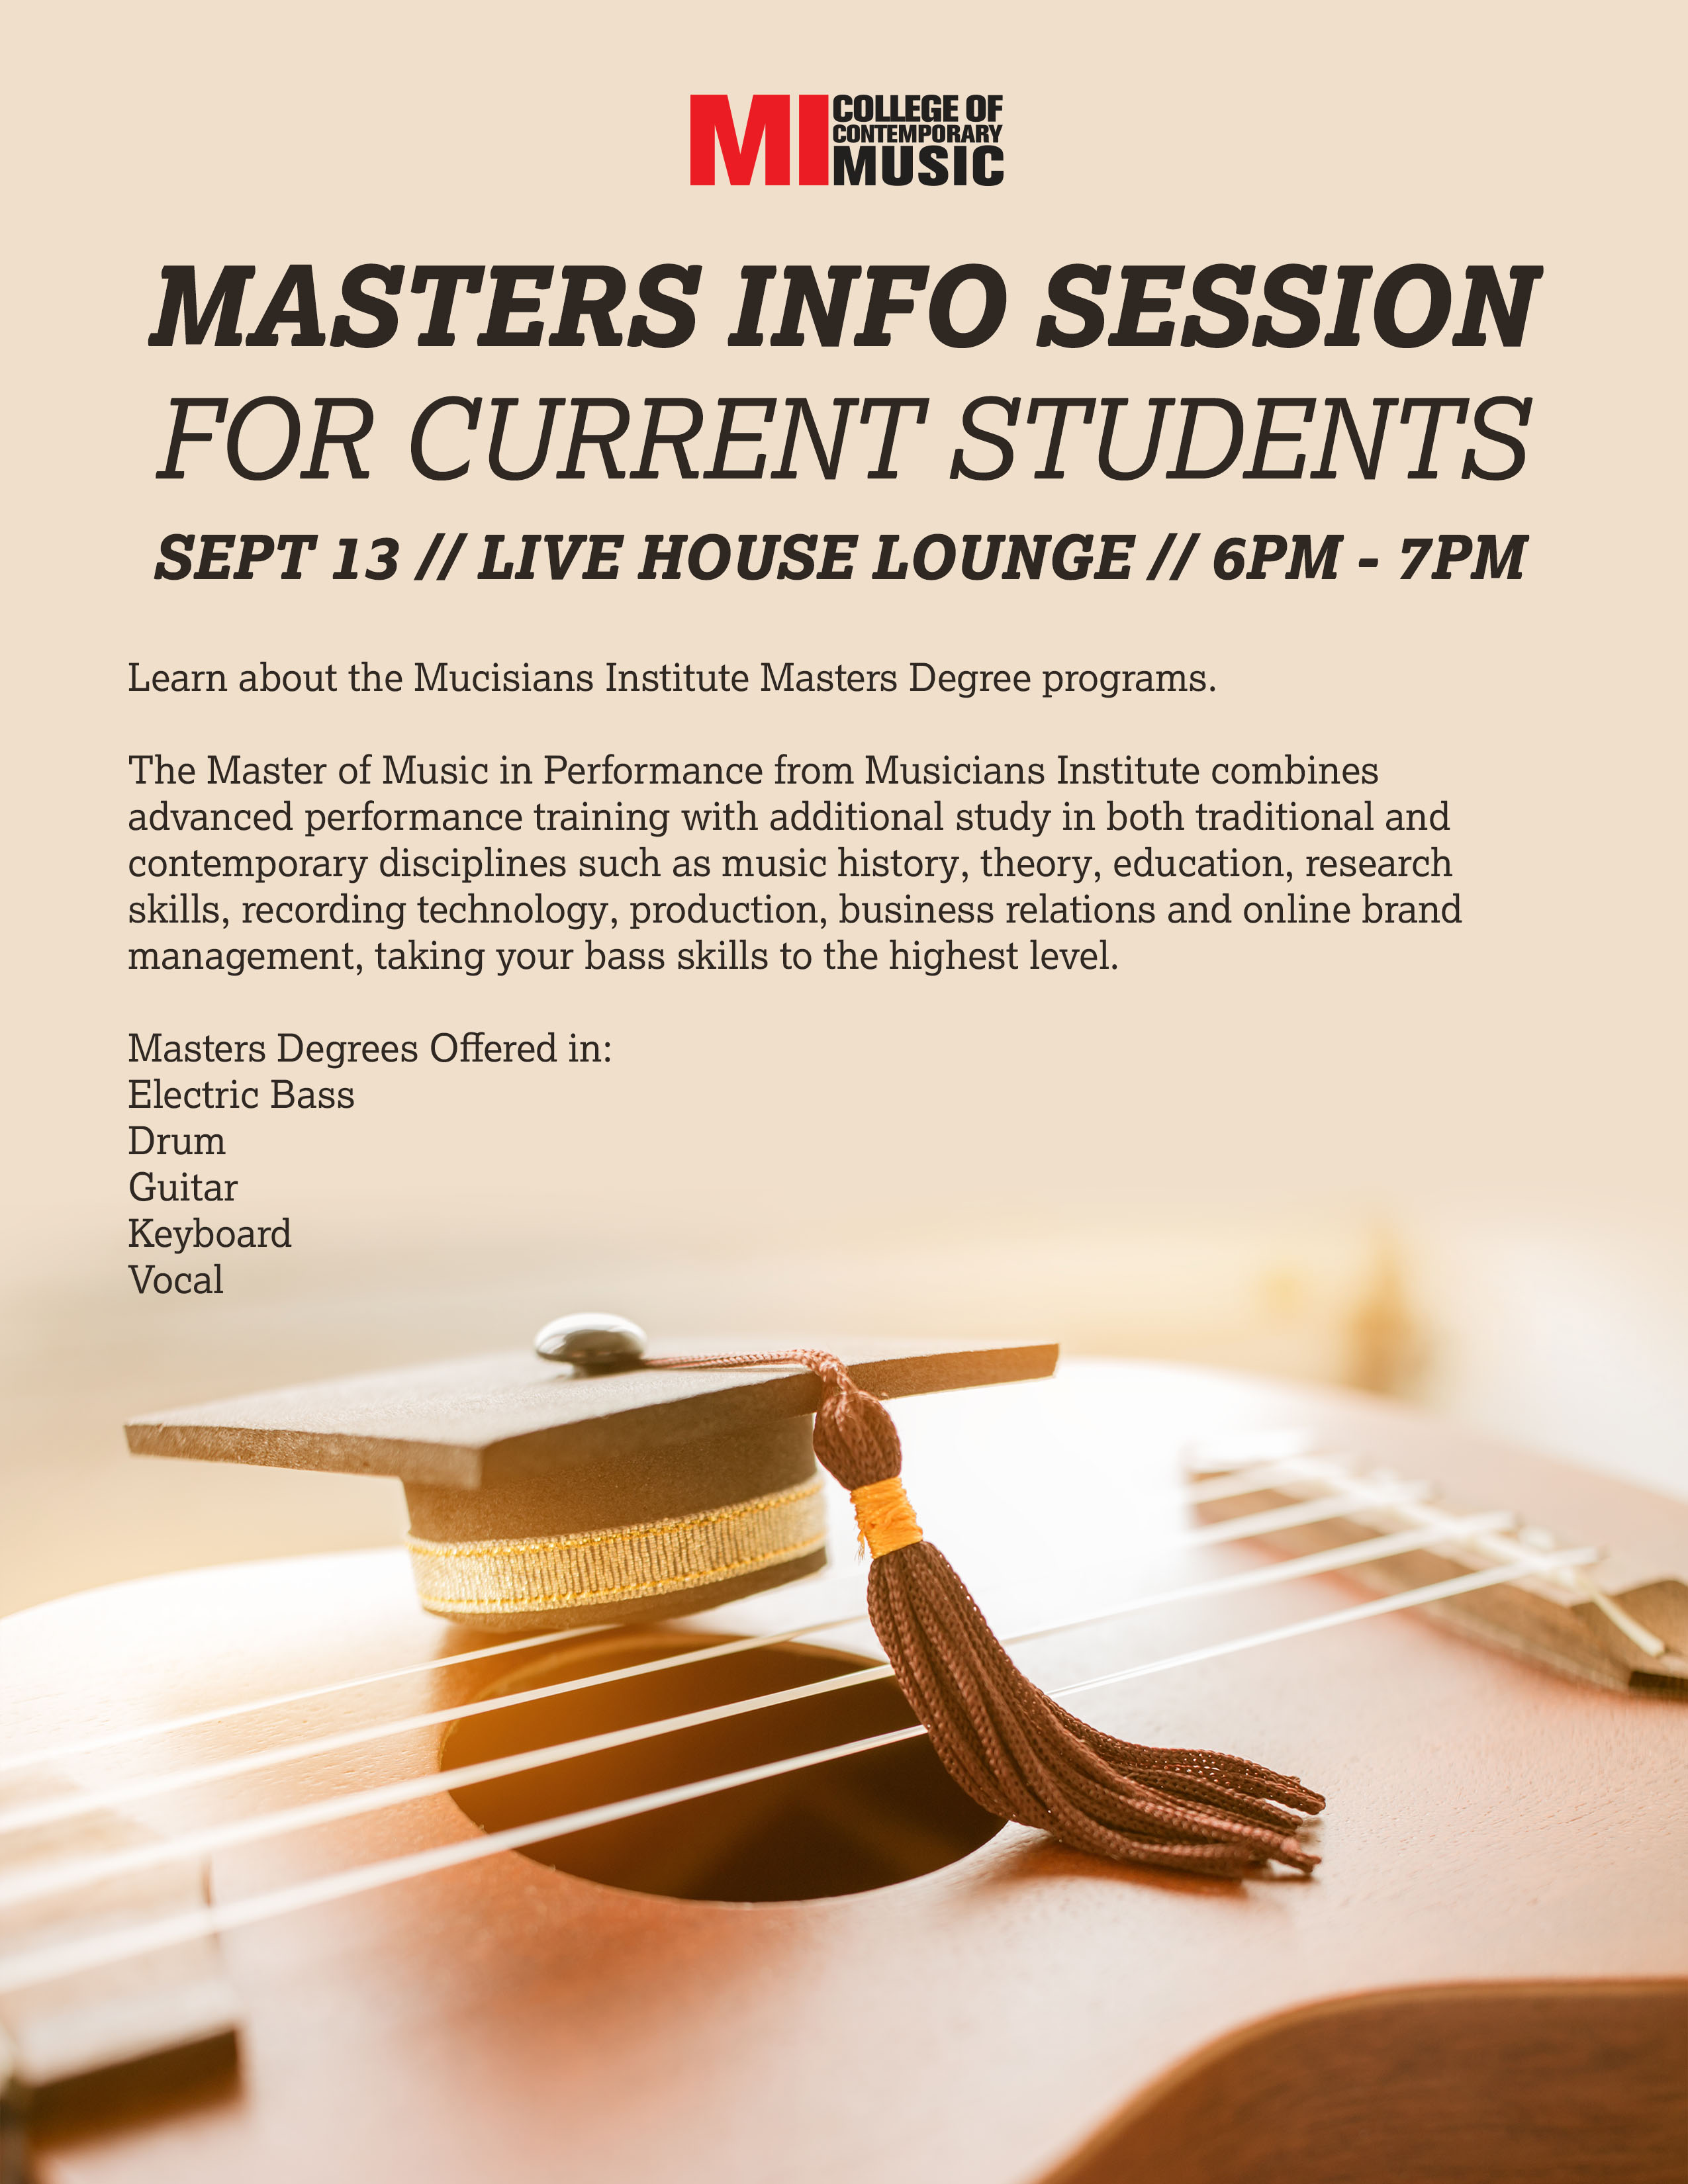 MASTERS INFO SESSION FOR CURRENT STUDENTS FRIDAY, SEPTEMBER 13, 2019, 6 – 7PM